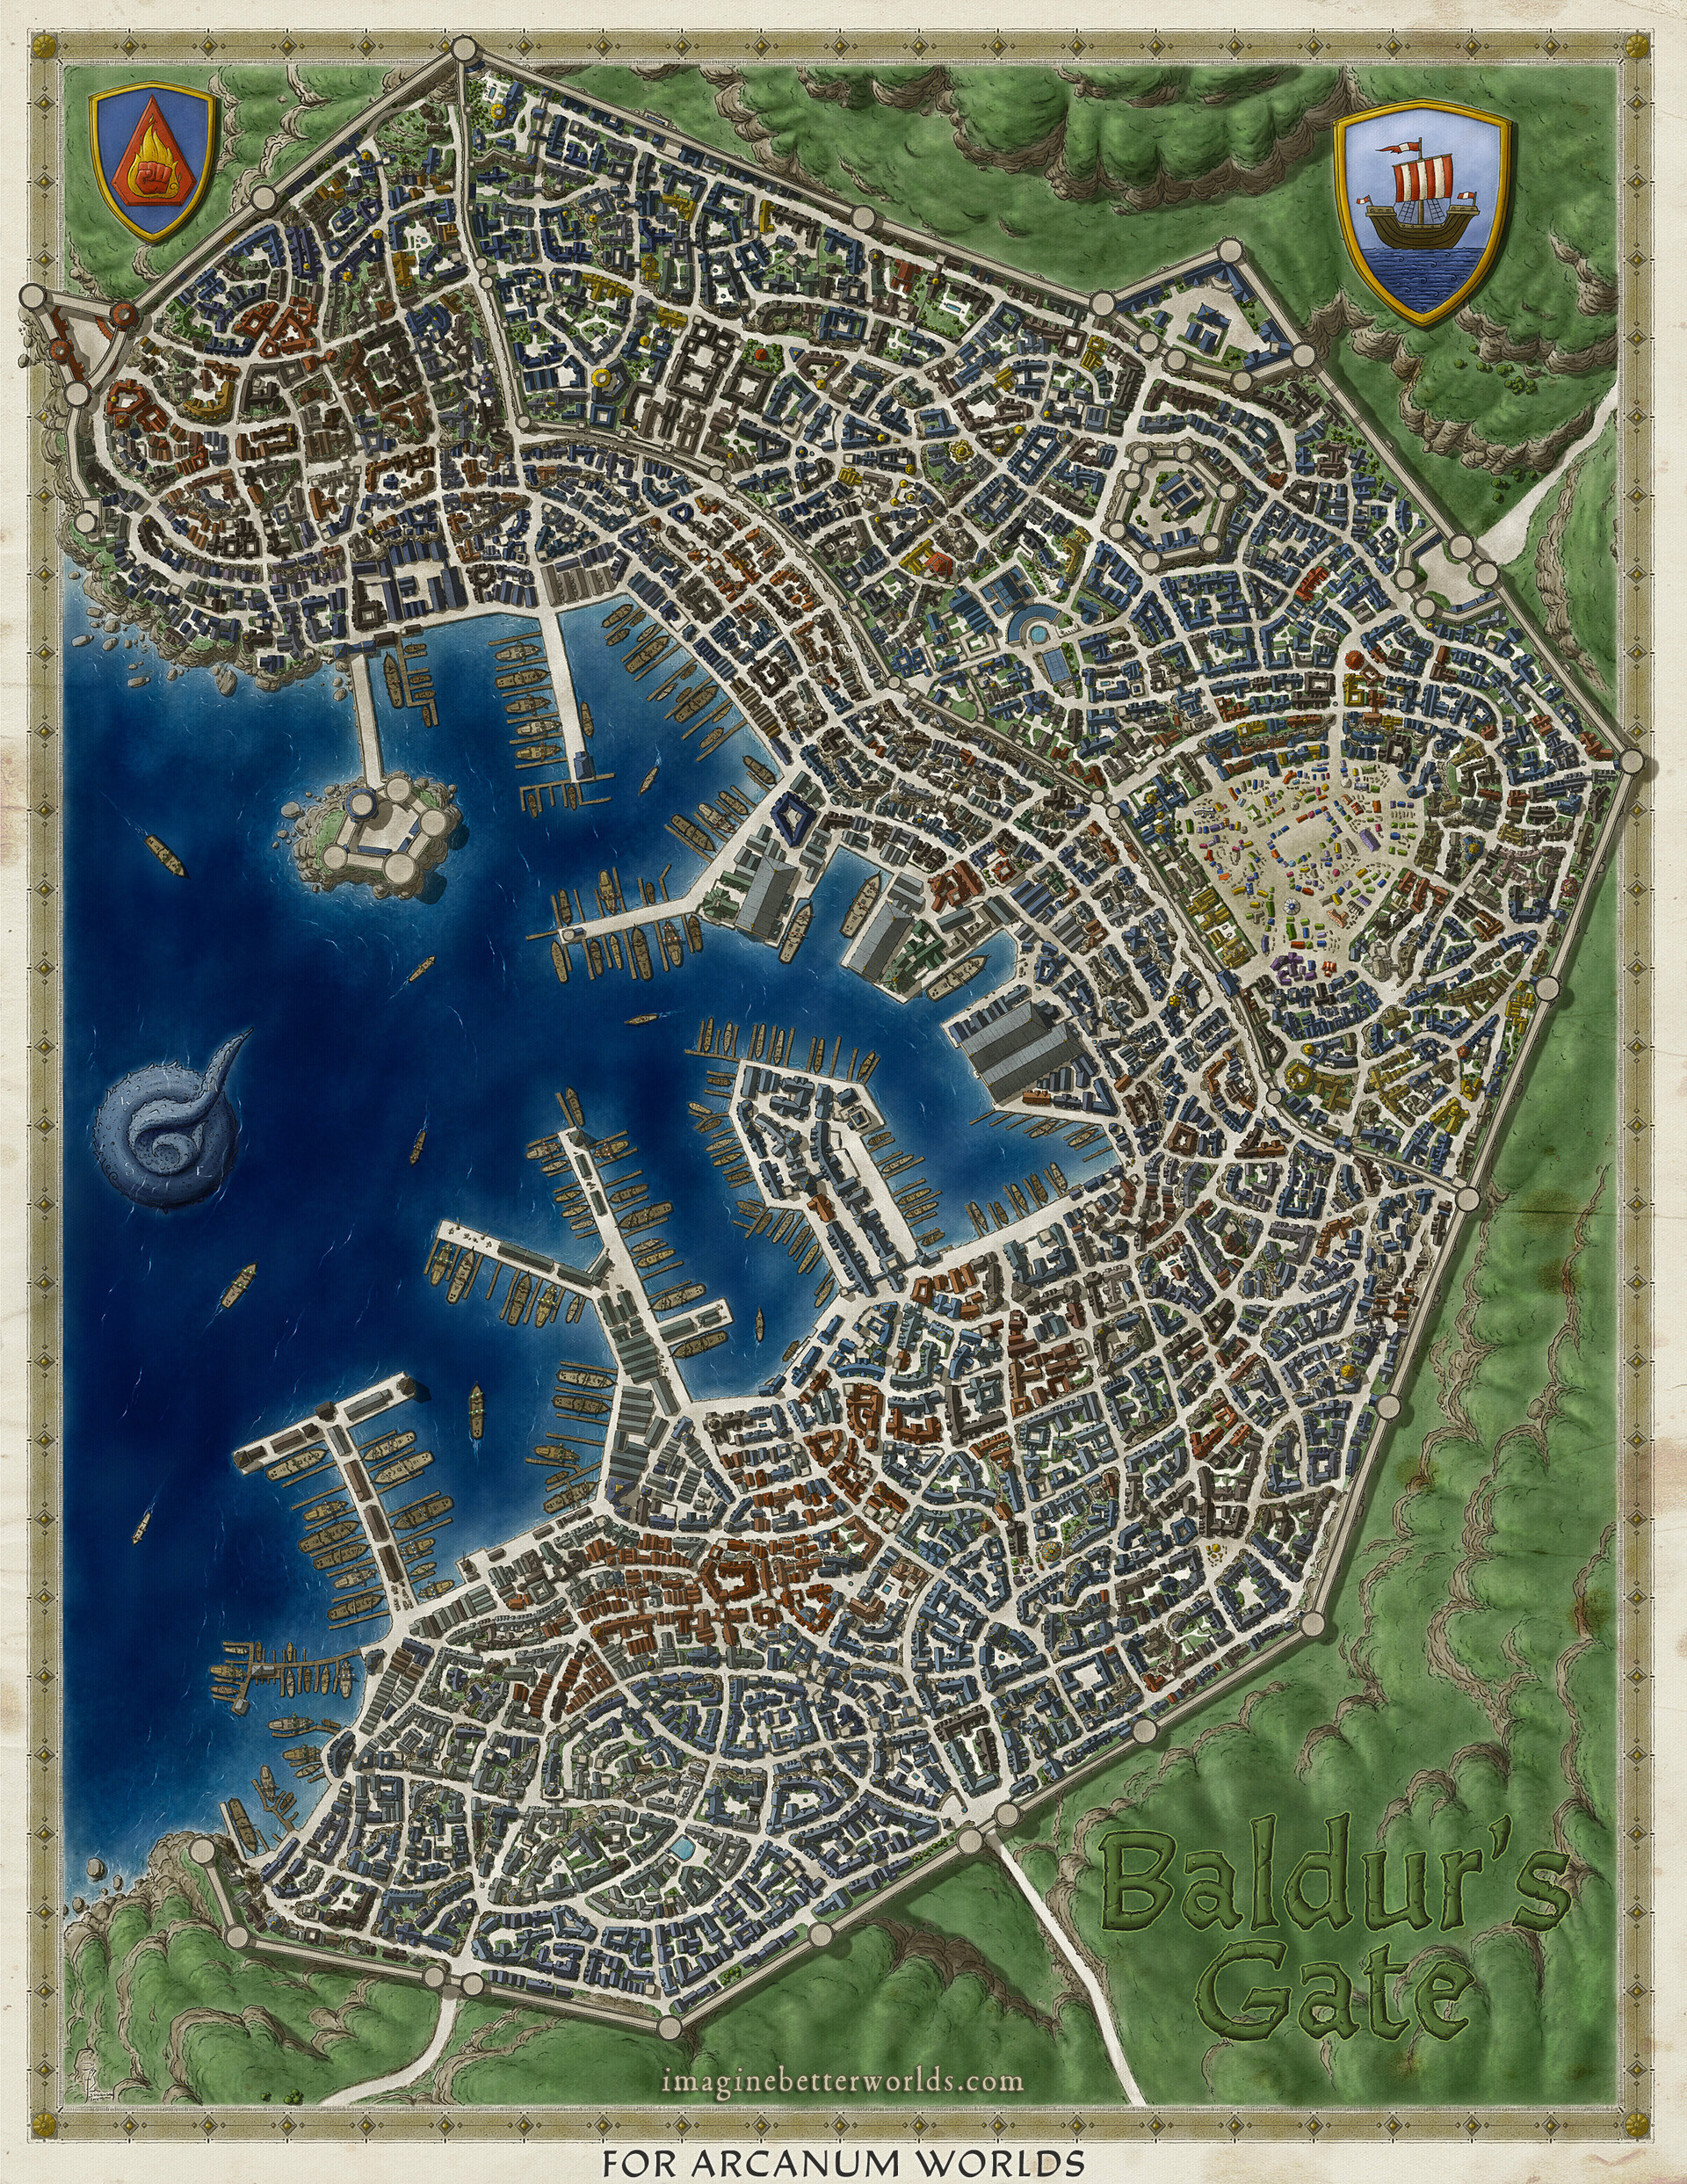 Baldur\'s Gate Map John Stevenson   Baldur's Gate city map